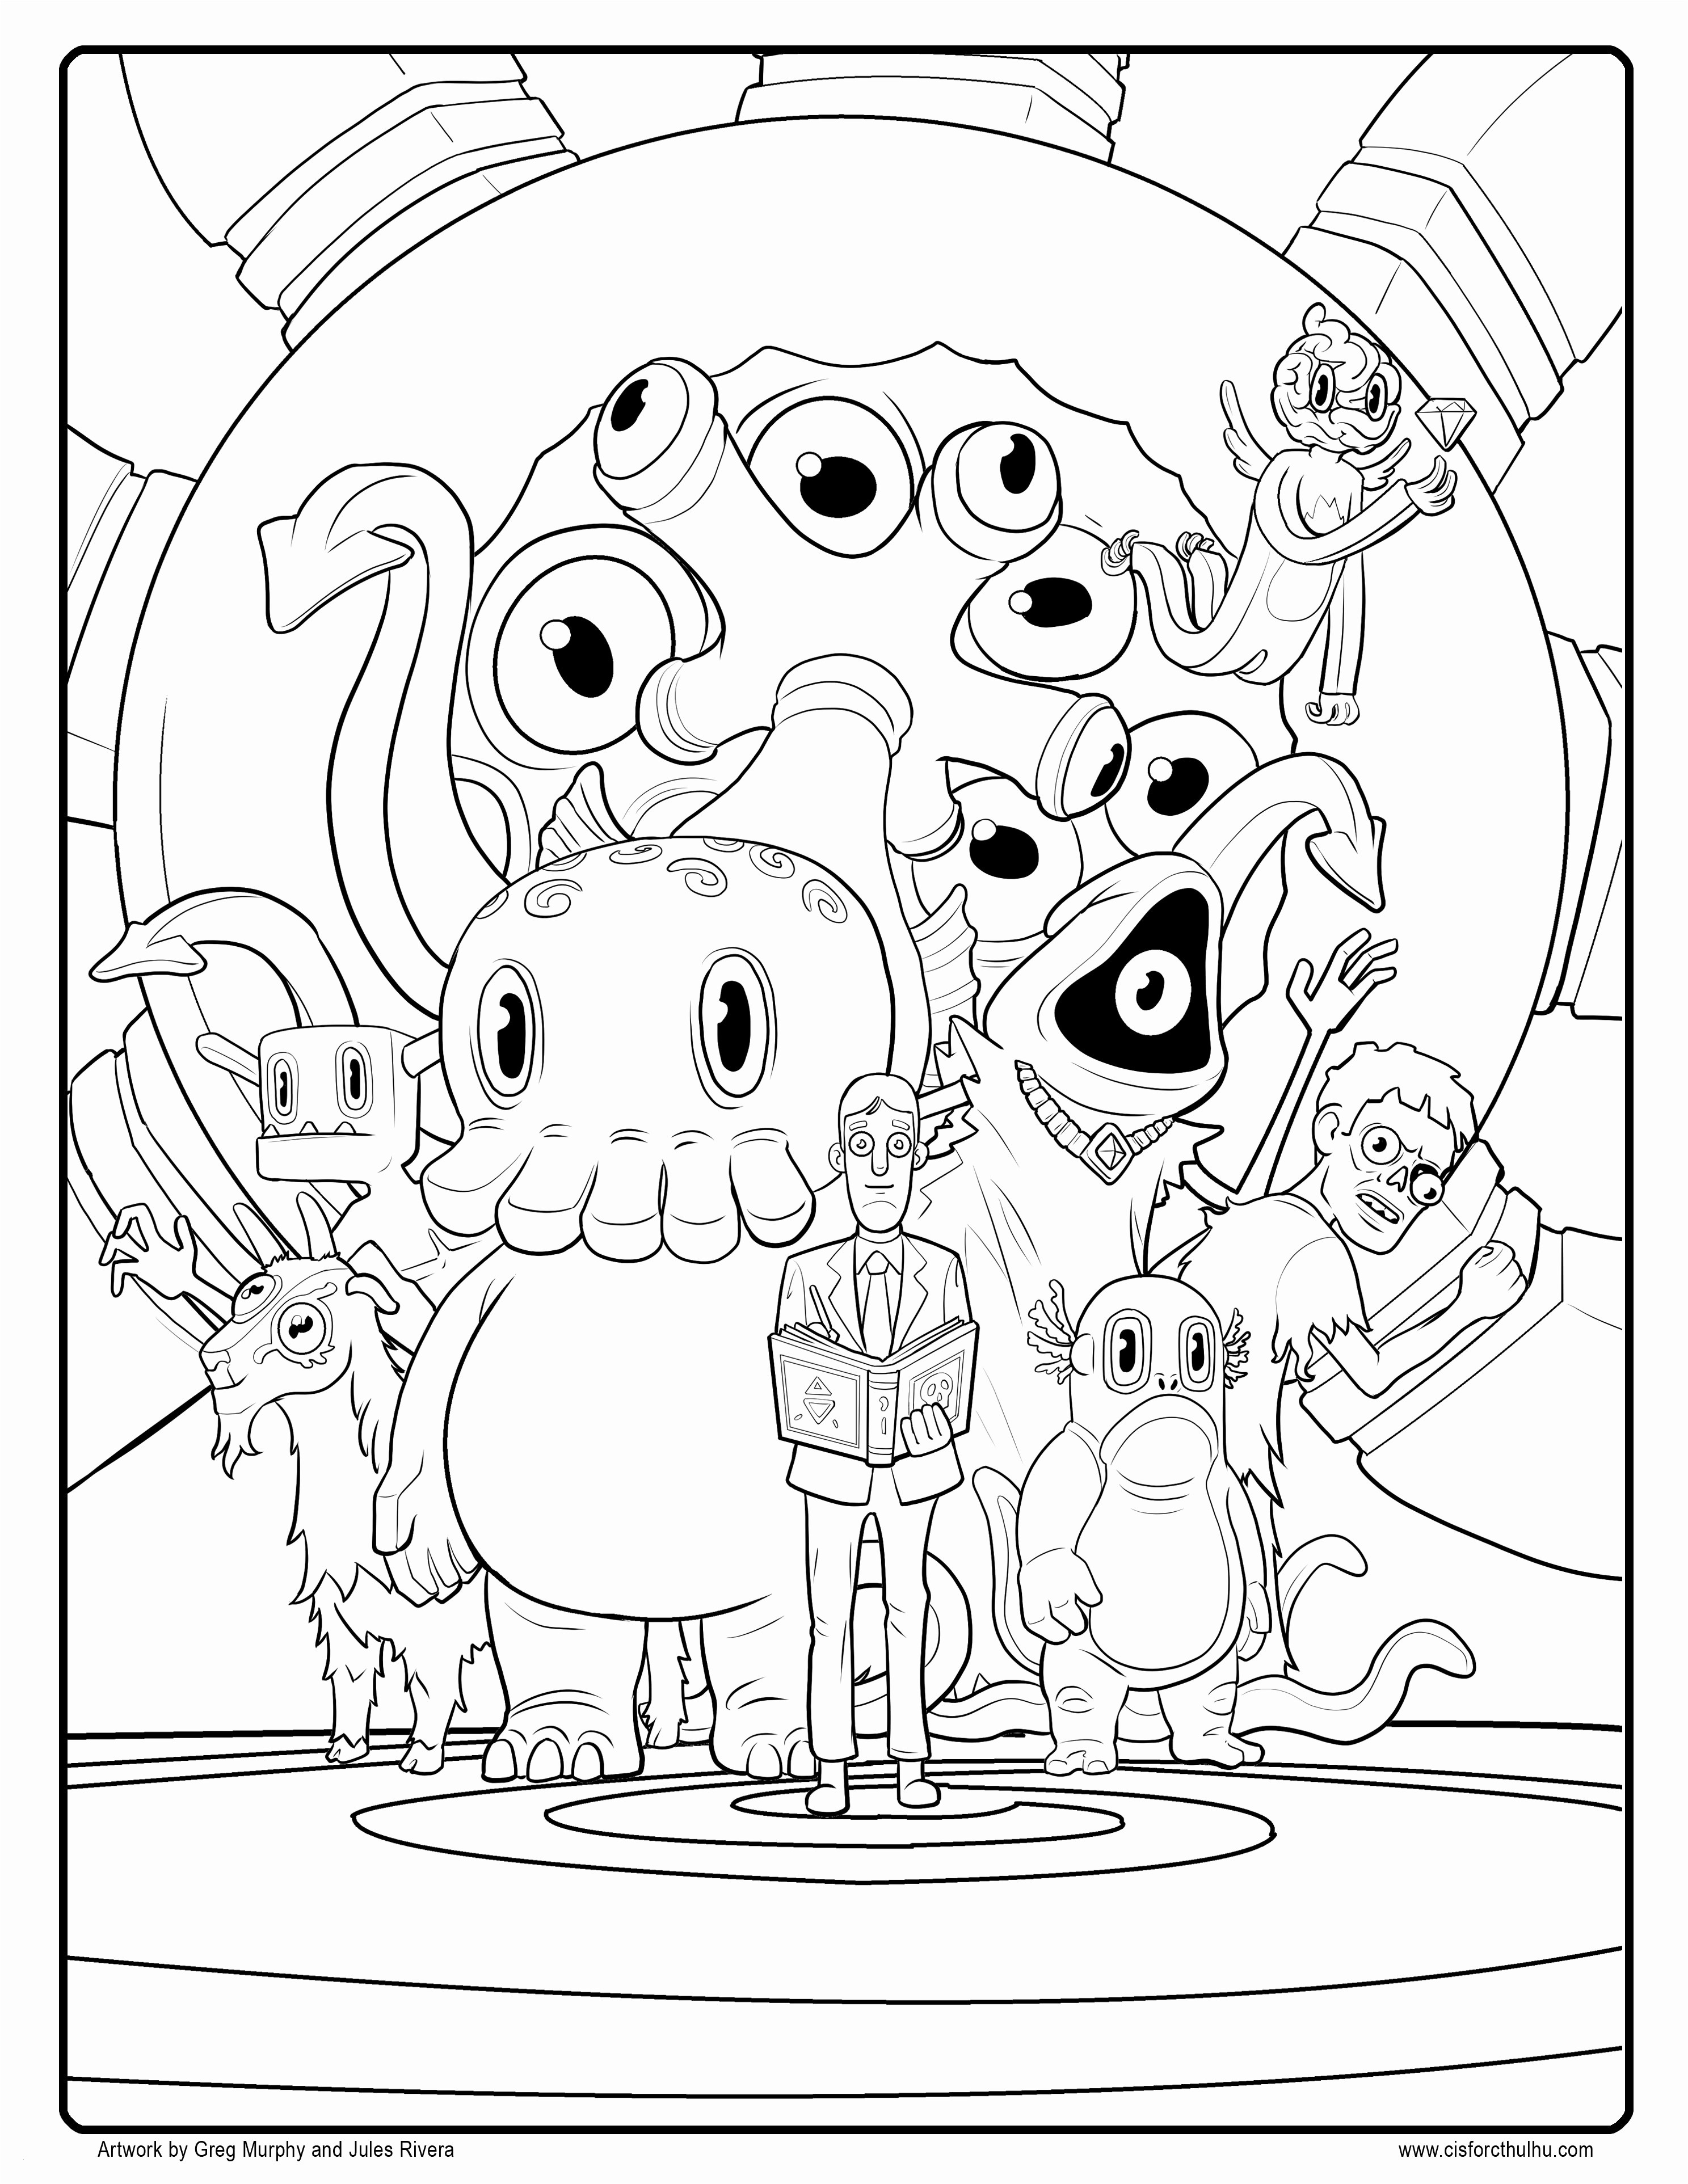 Ships Coloring Pages  Printable 8h - Save it to your computer